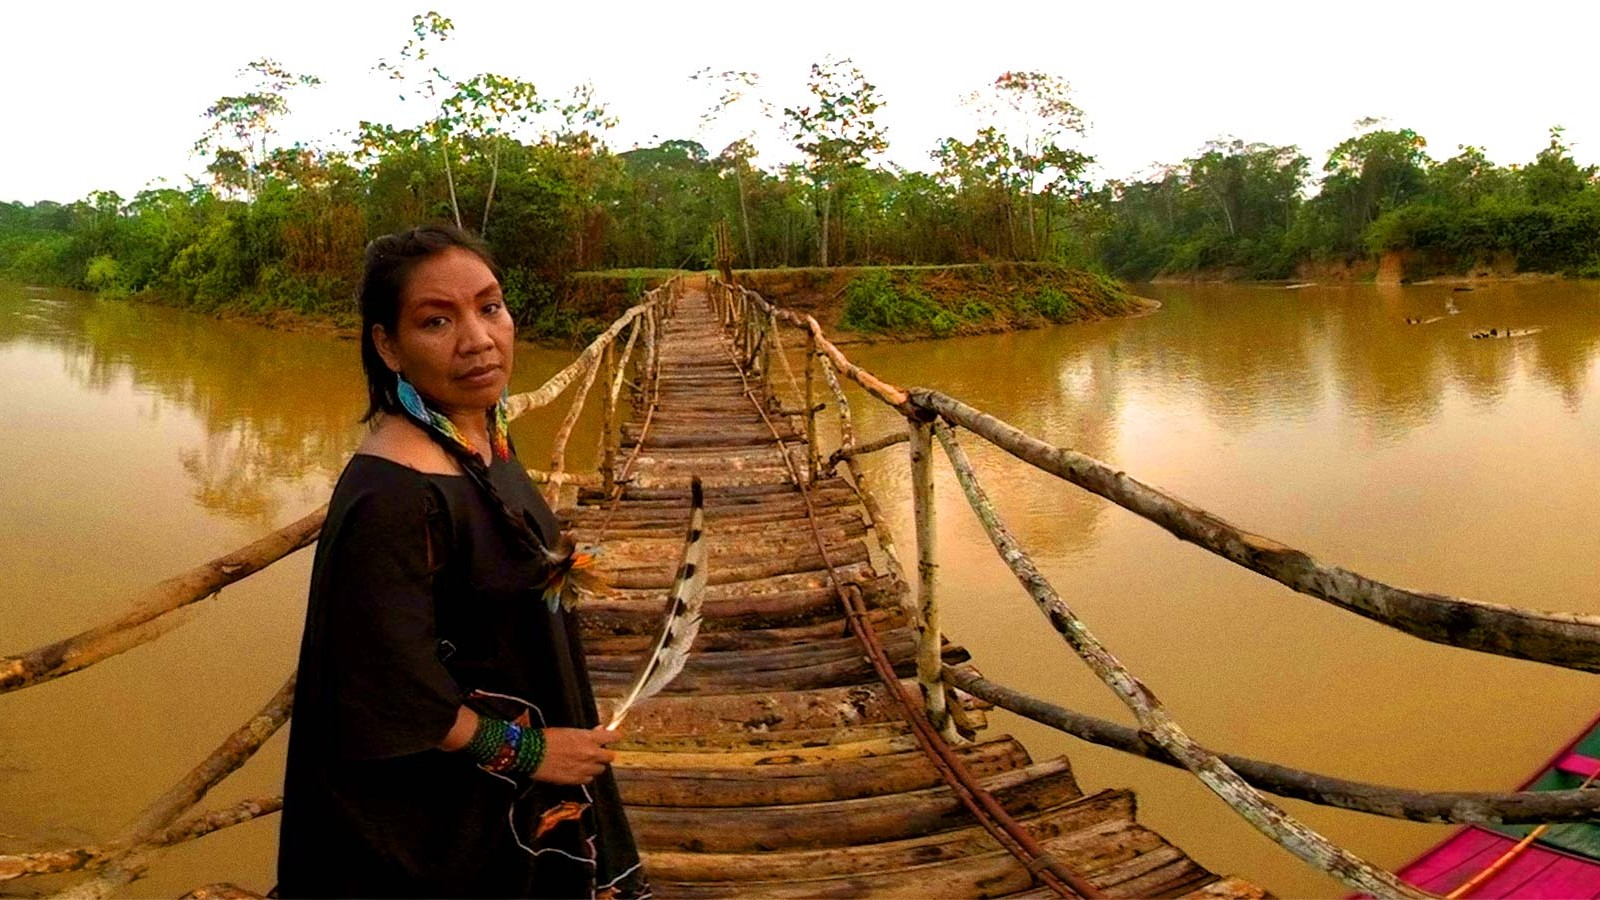 This VR Film Takes You on an Ayahuasca Journey to the Amazon